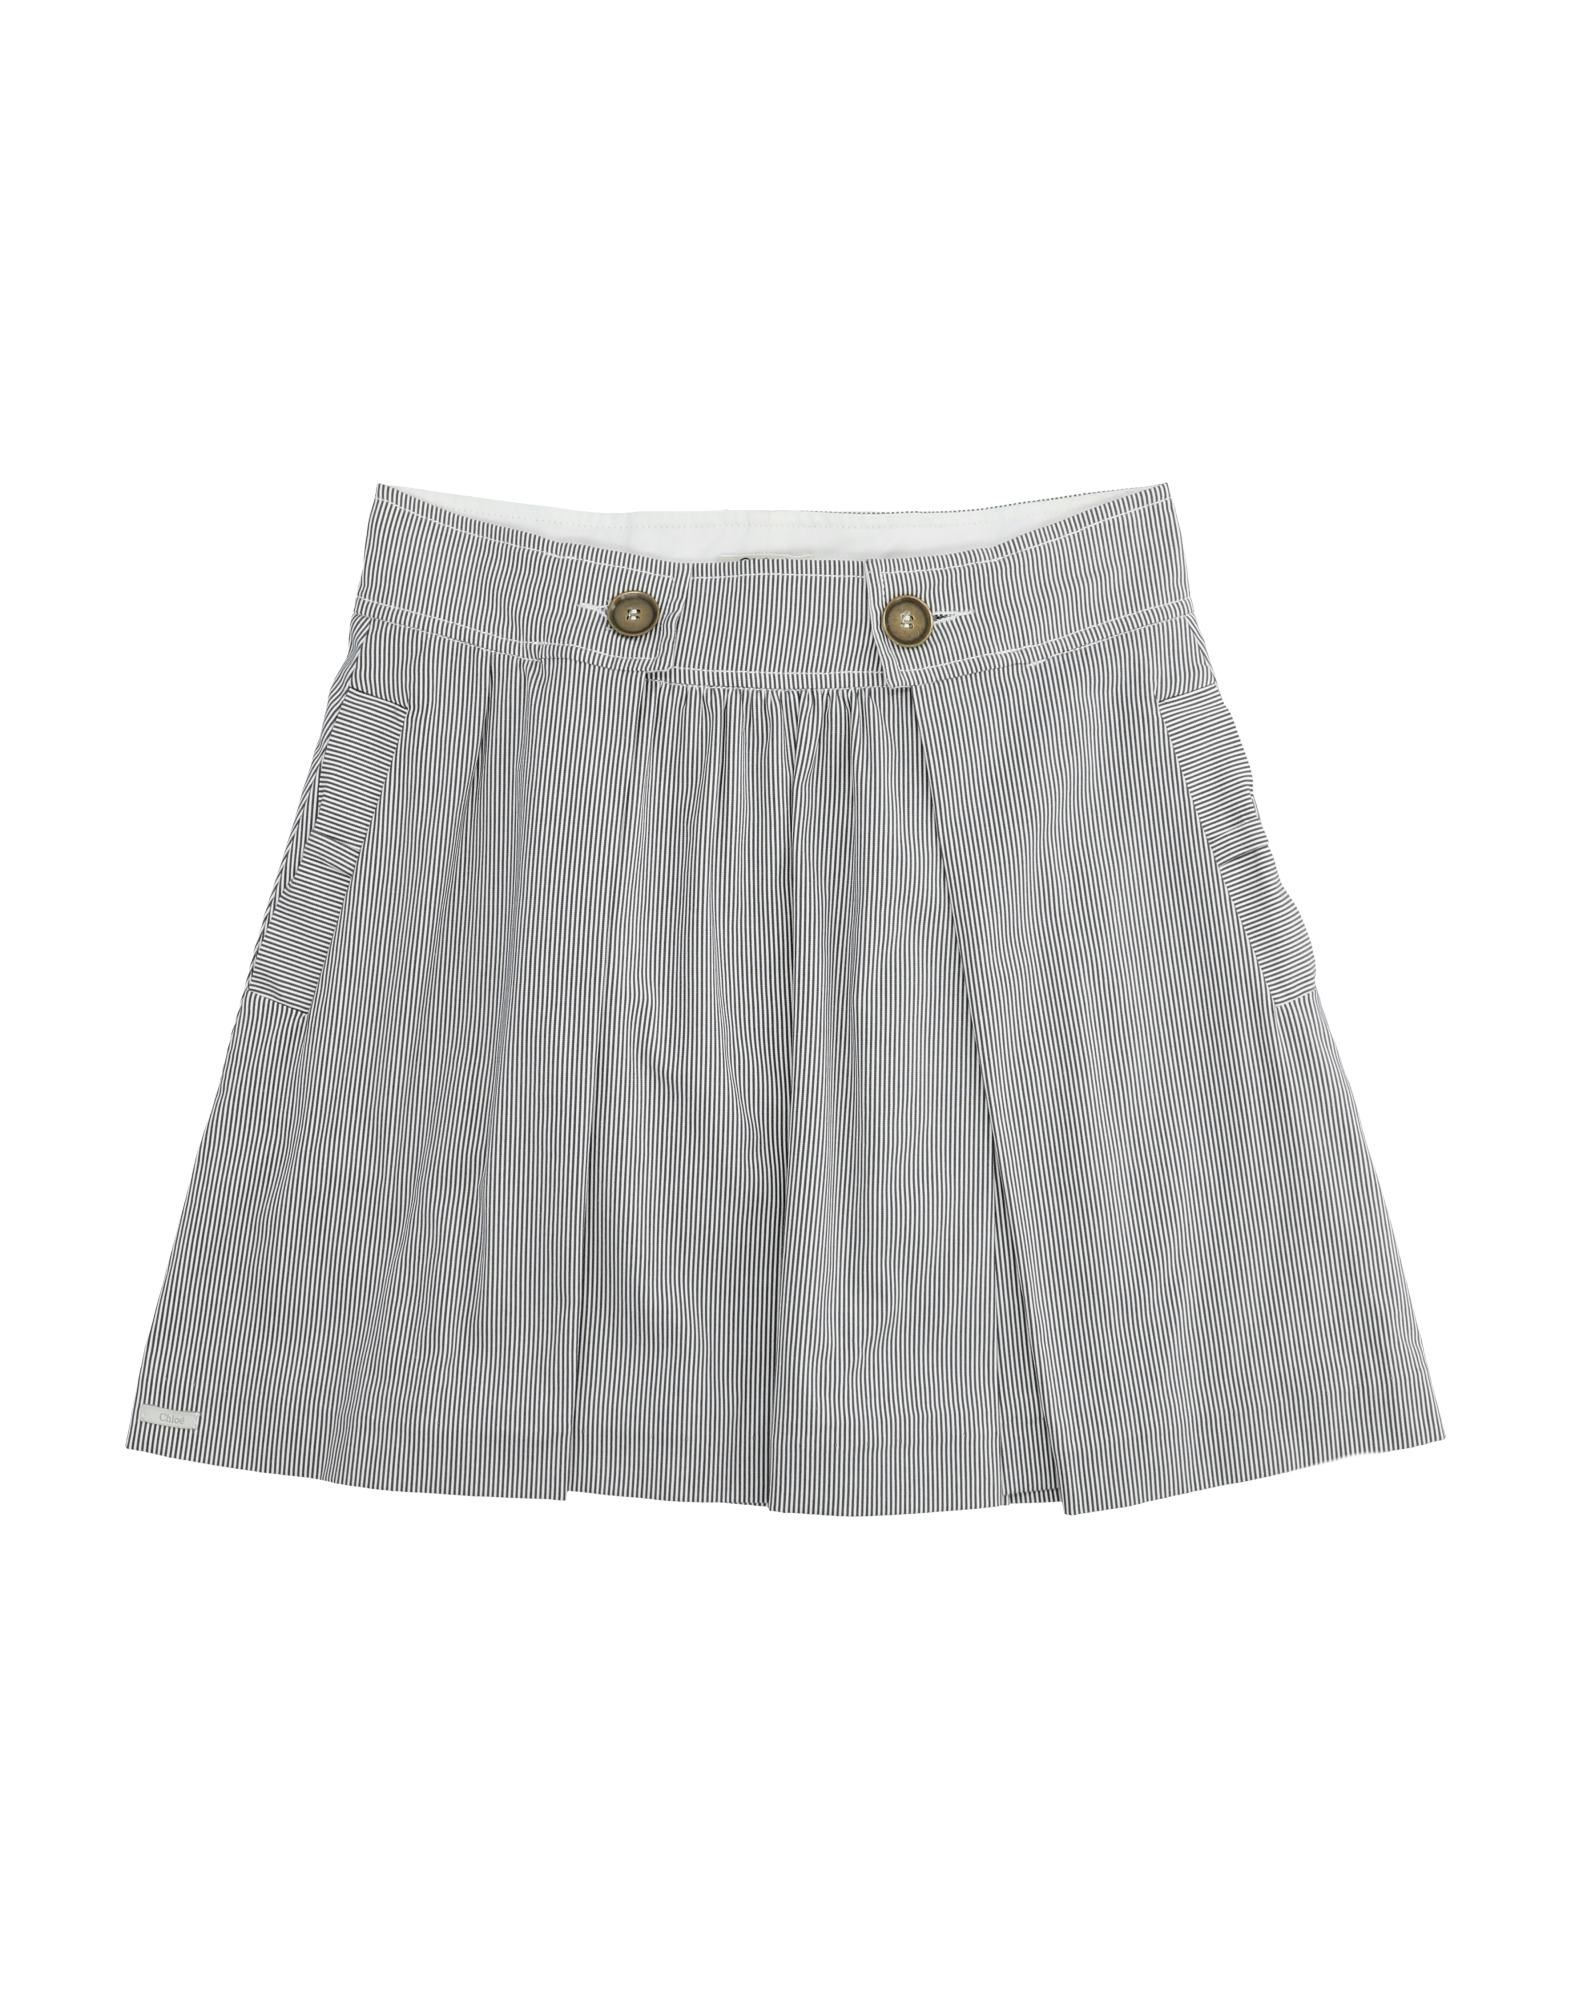 CHLOÉ Skirts. plain weave, logo, folds, stripes, multipockets, front closure, snap-buttons, zip, unlined, wash at 30degree c, dry cleanable, iron at 110degree c max, do not bleach, do not tumble dry, stretch, large sized. 96% Cotton, 4% Elastane